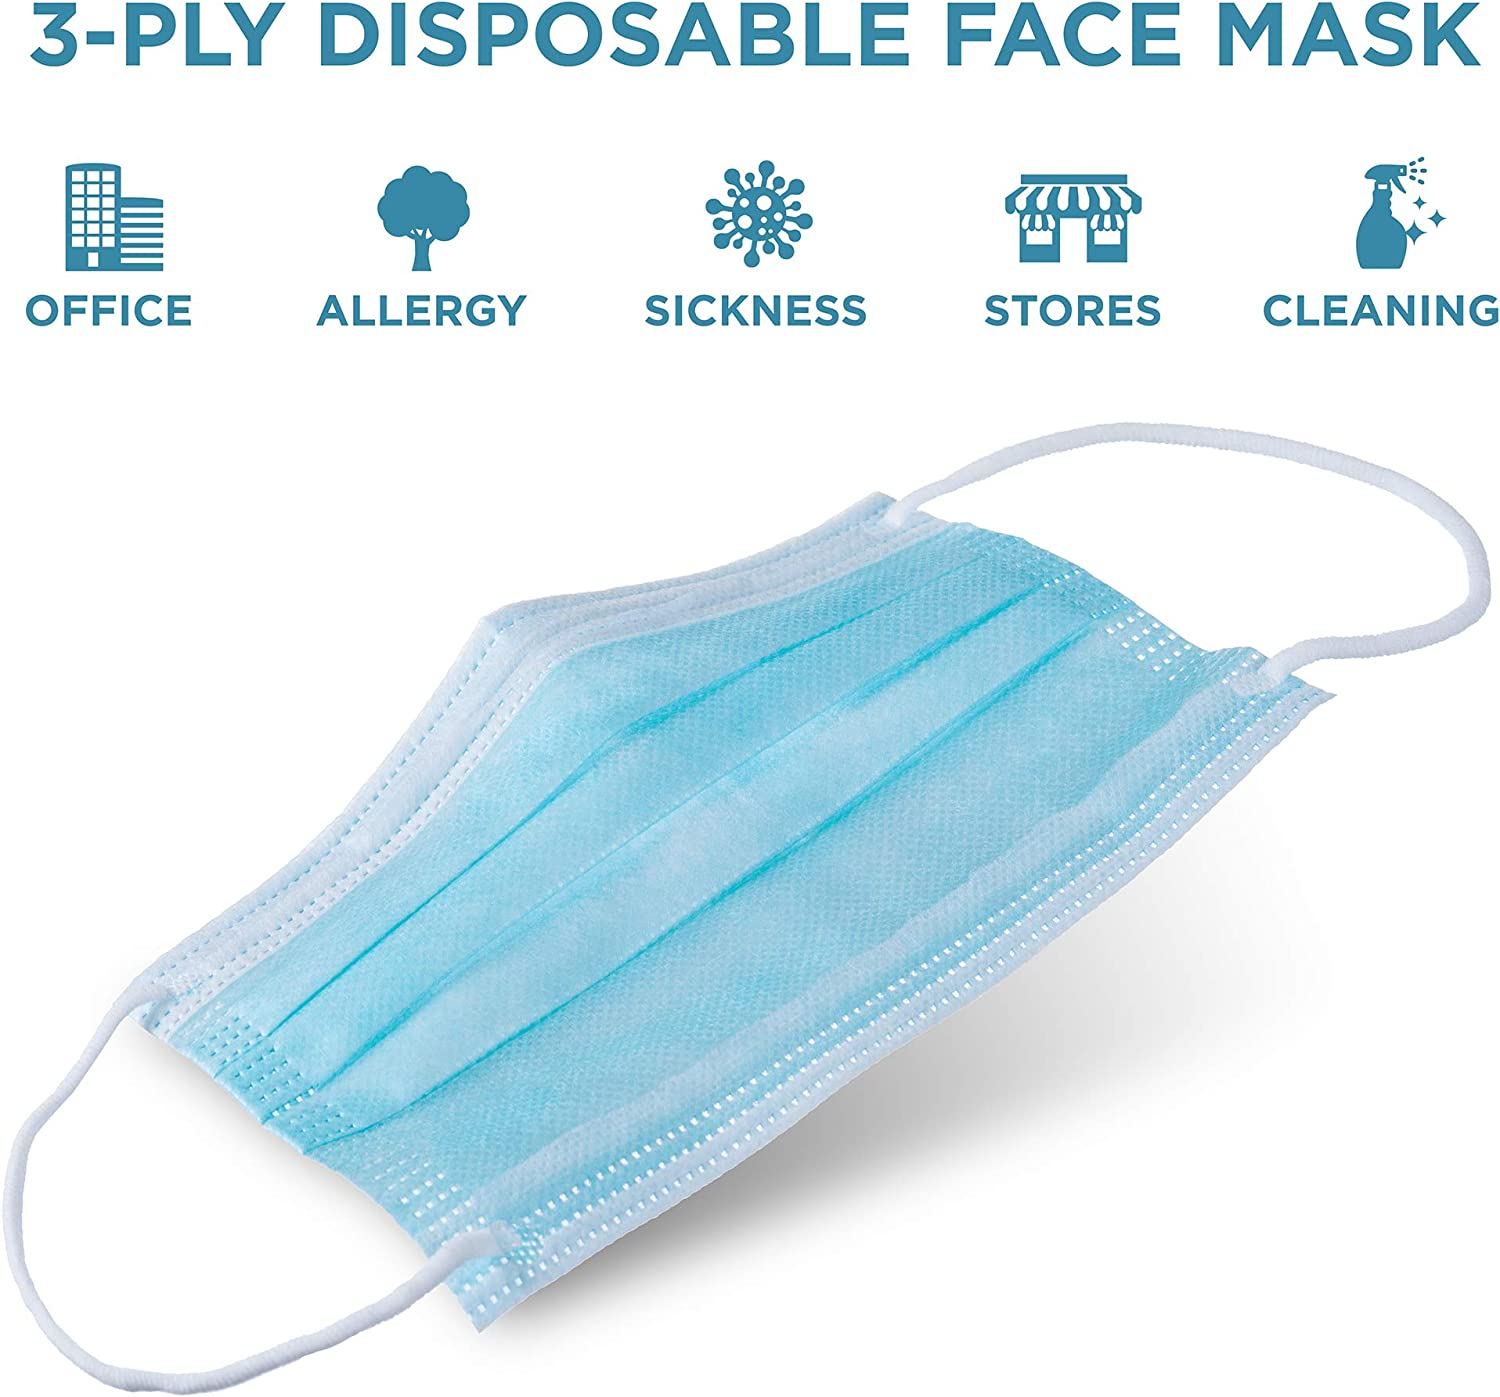 Jumbl Blue Disposable Face Masks Protective 3-Ply Breathable Comfortable Nose//Mouth Coverings for Home /& Office Pack of 150 Ships from USA Elastic Ear Loop 3-Layer Safety Shield for Adults//Kids